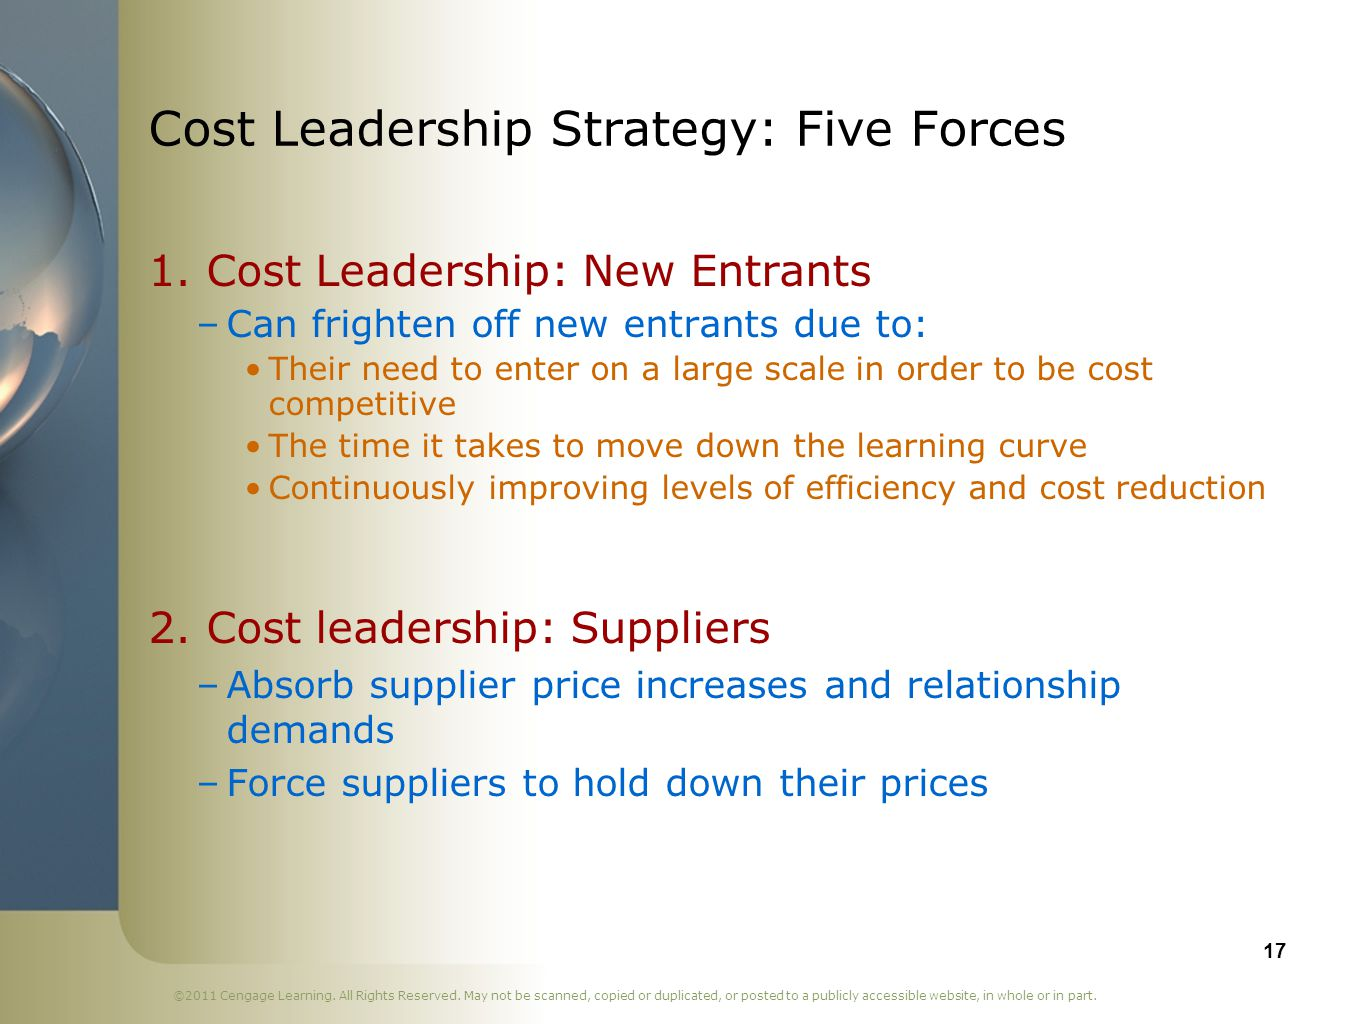 Cost Leadership Strategy: Five Forces